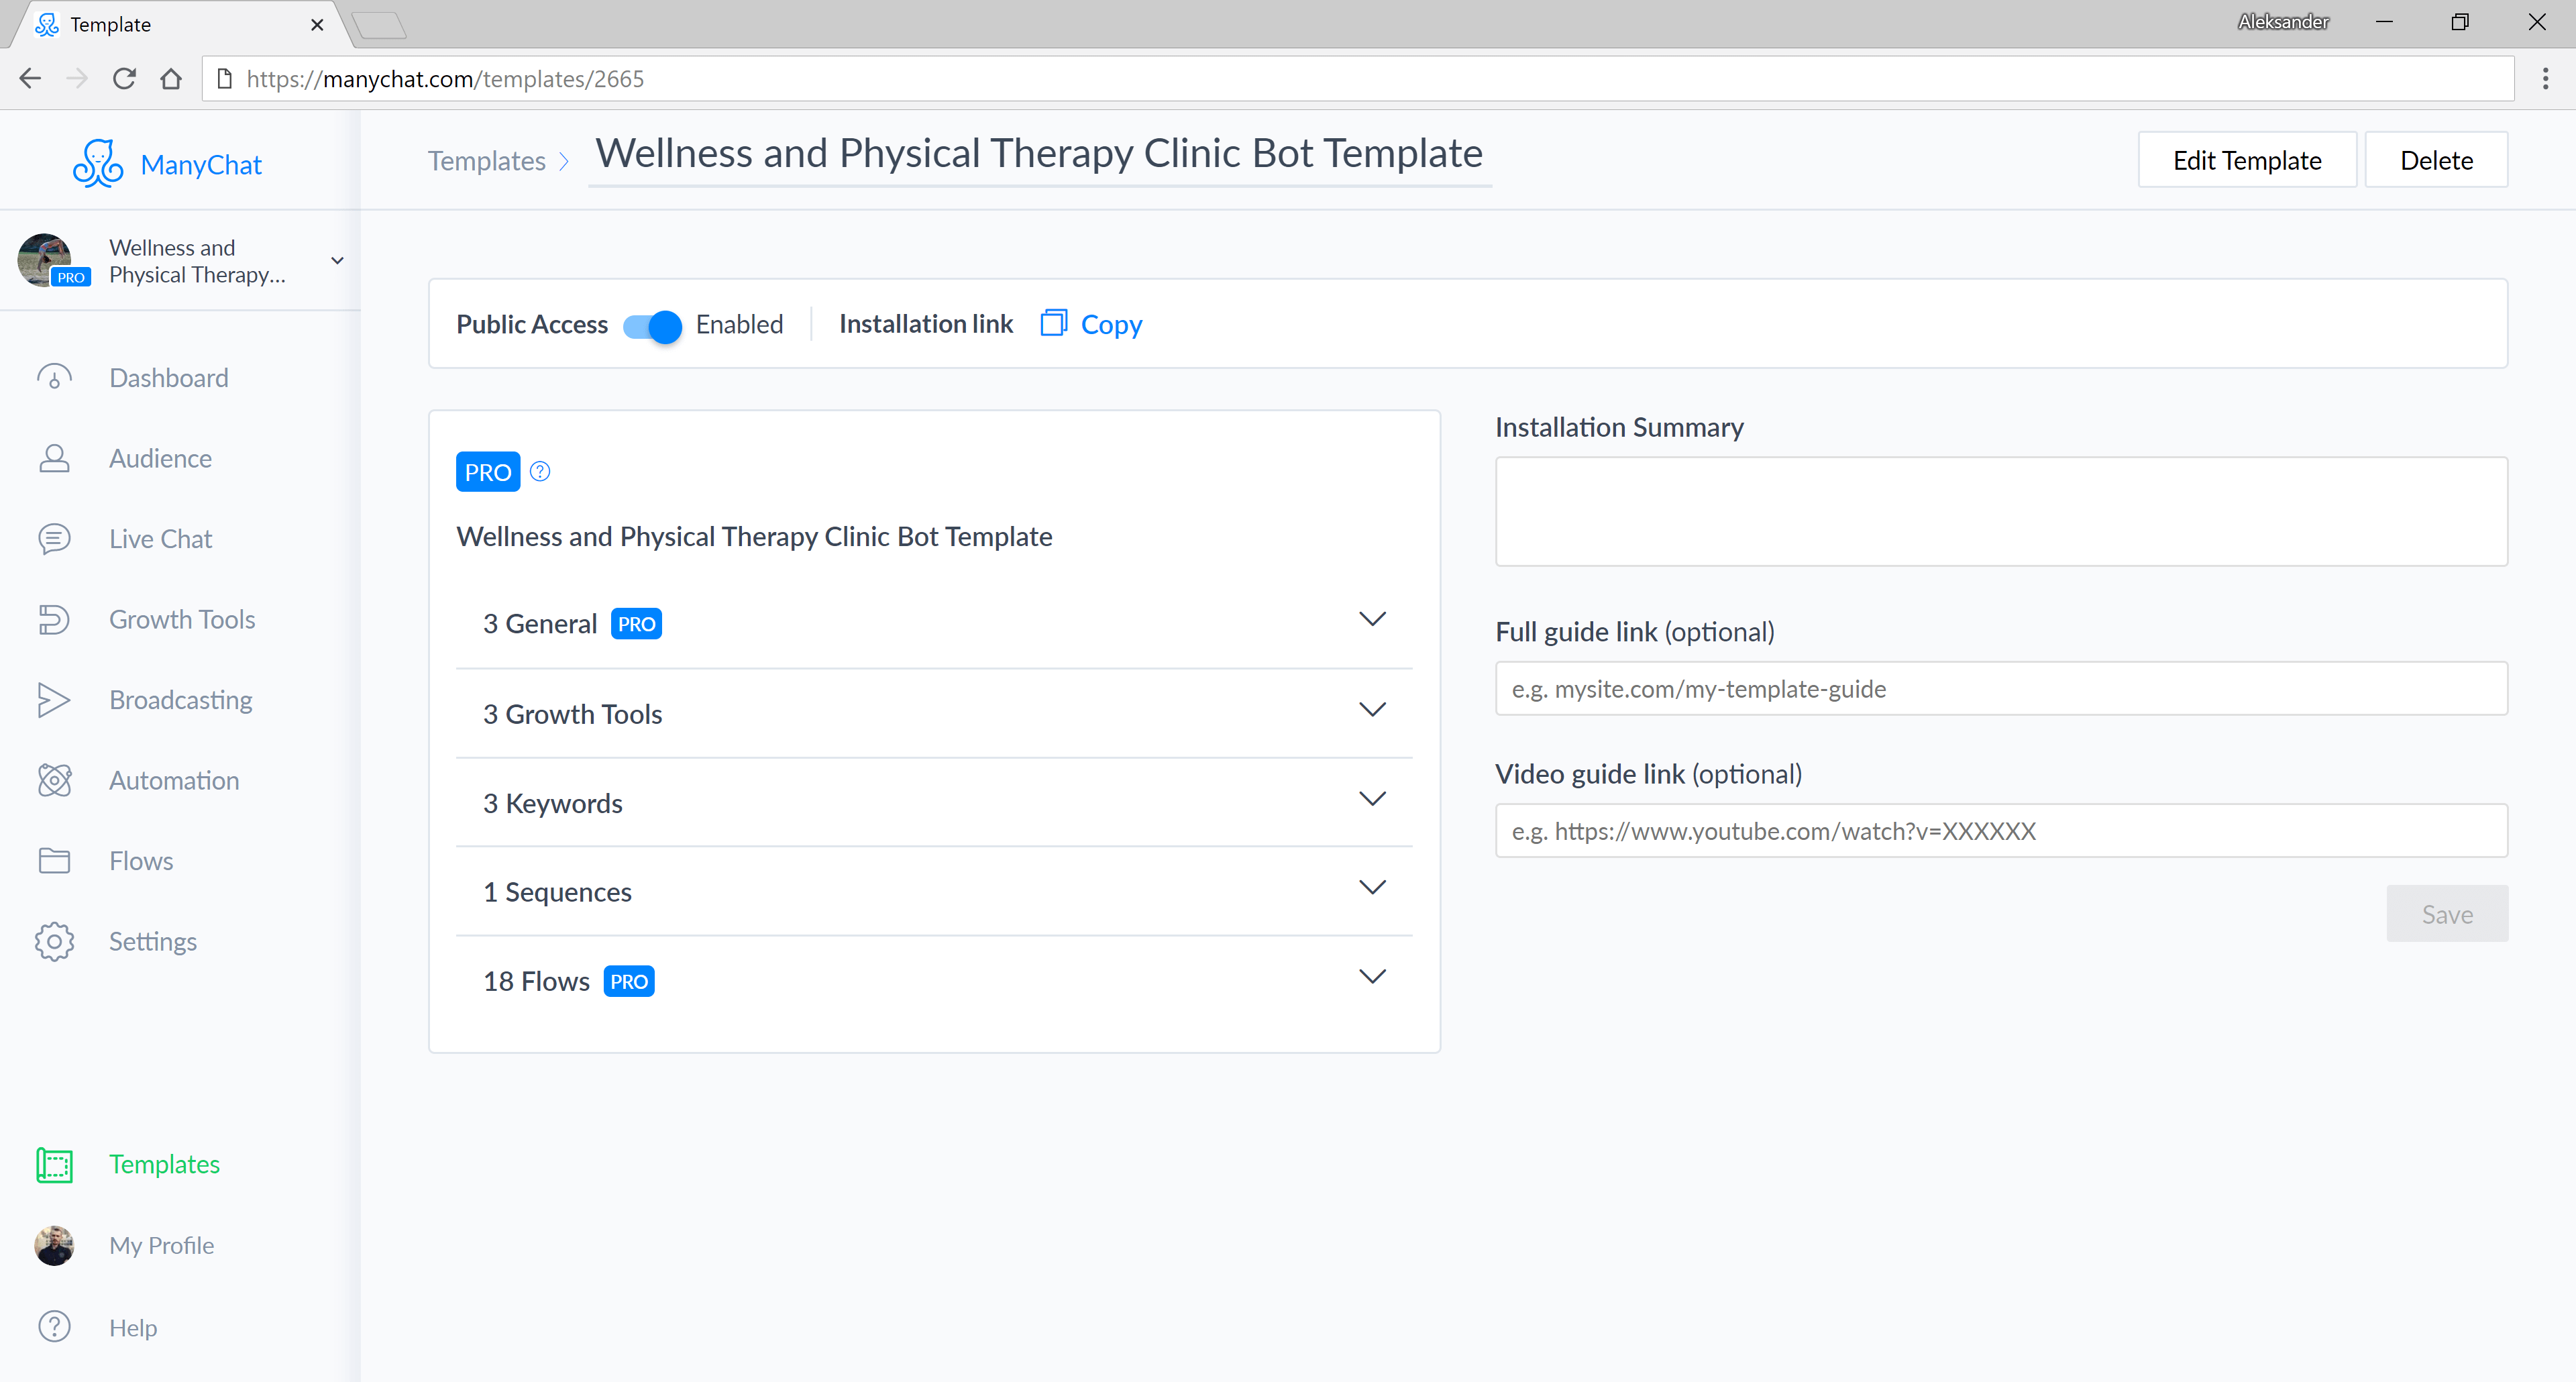 ManyChat flow editor screenshot for Appointment Bot for Wellness Services